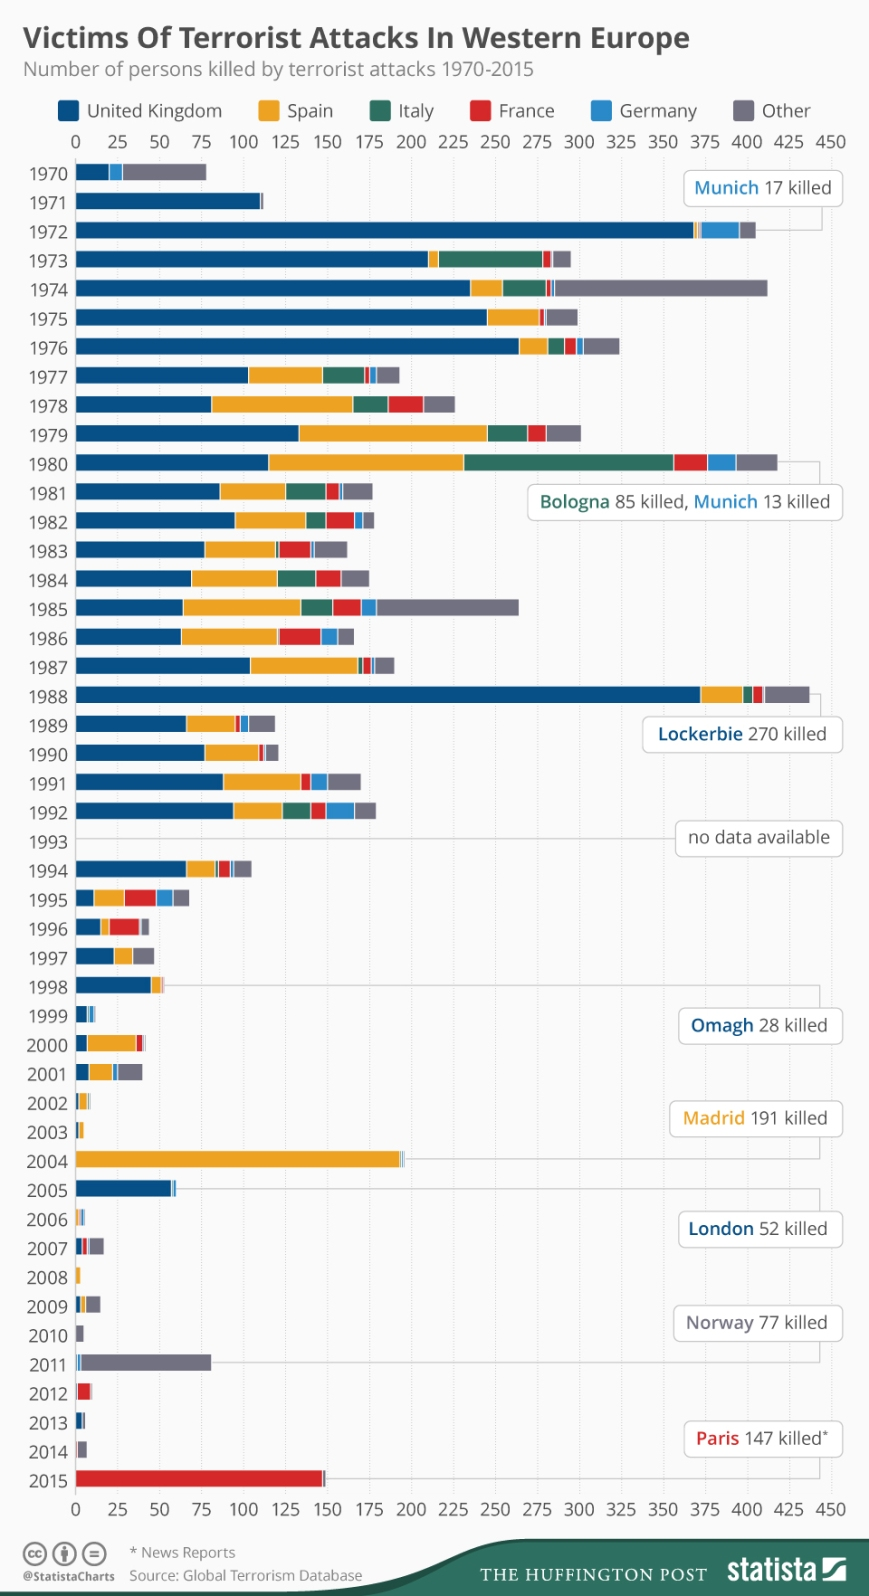 4093_people_killed_by_terrorist_attacks_in_western_europe_since_1970_n